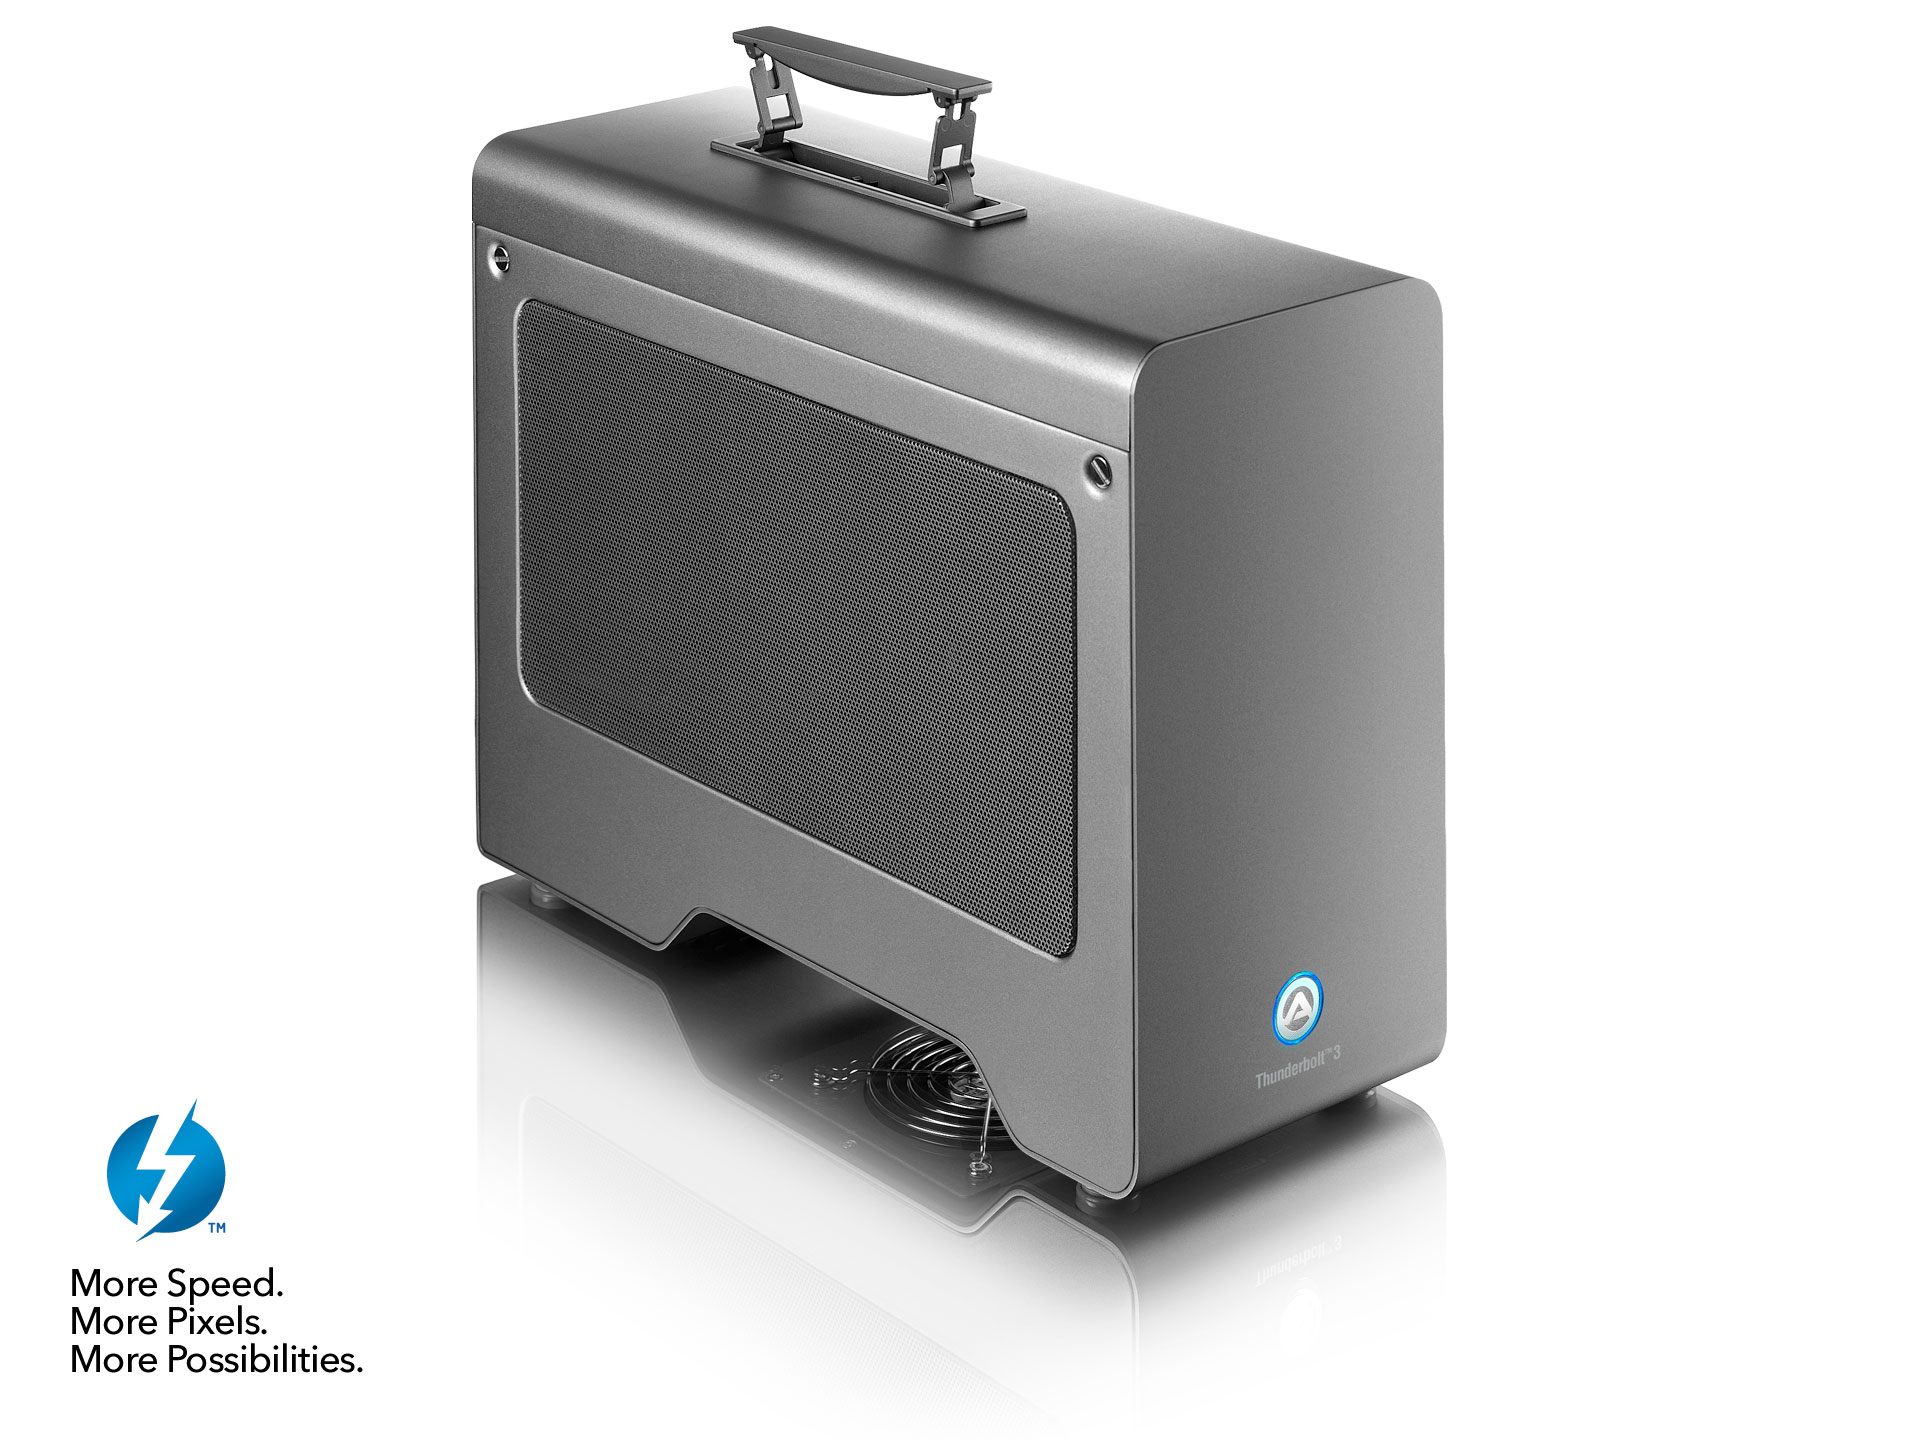 Node Pro - Thunderbolt 3 PCIe Expansion Chassis with PD   AKiTiO